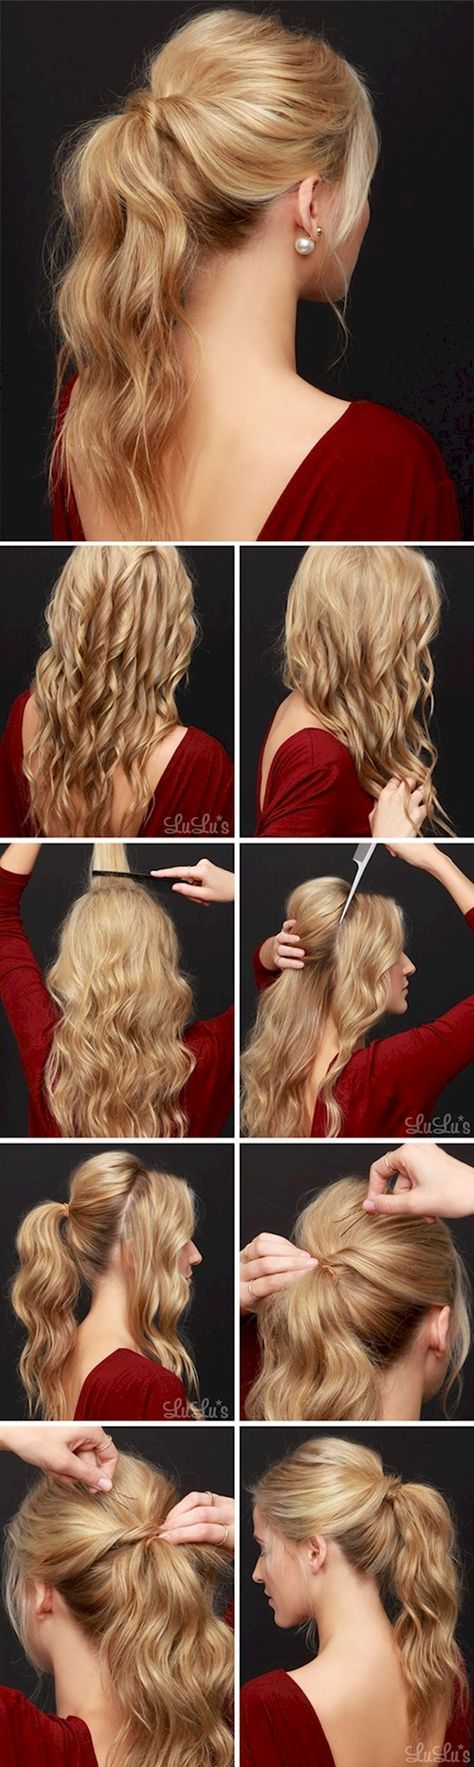 14 Awesome Ponytail Styles For Different Lengths And Types Of Hair | Ponytail styles, Ponytail ...